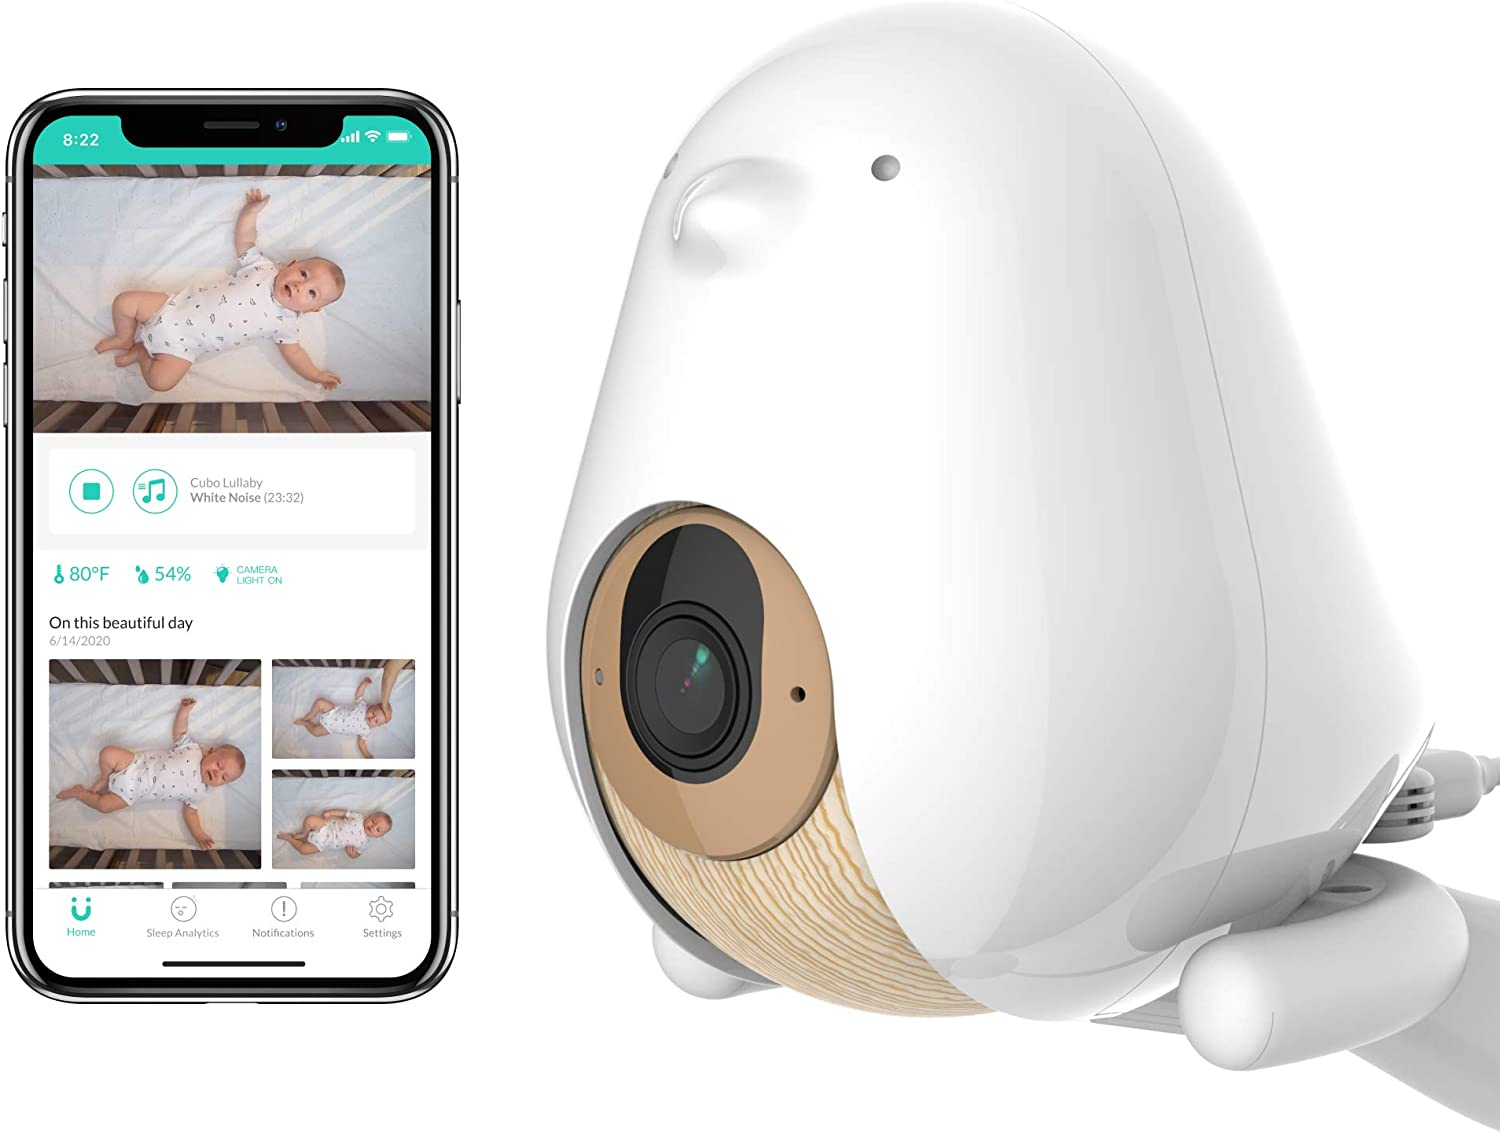 Cubo Ai Plus Smart Baby Monitor: Sleep Safety Alerts for Covered Face